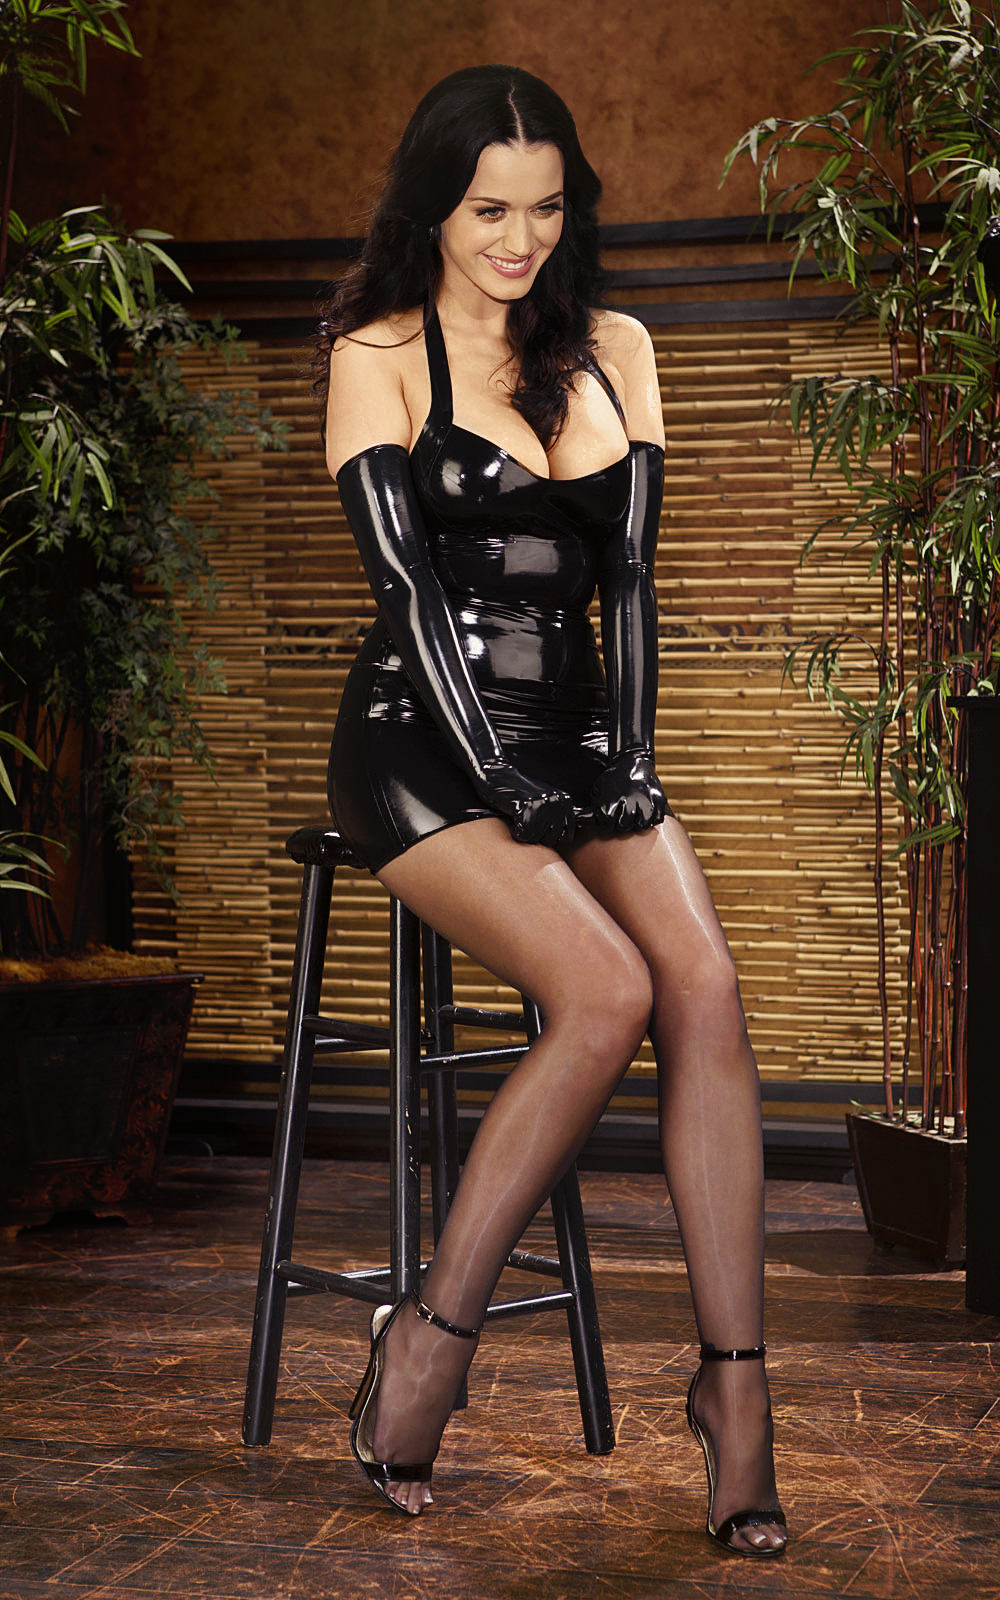 Latex and nylon pictures #13